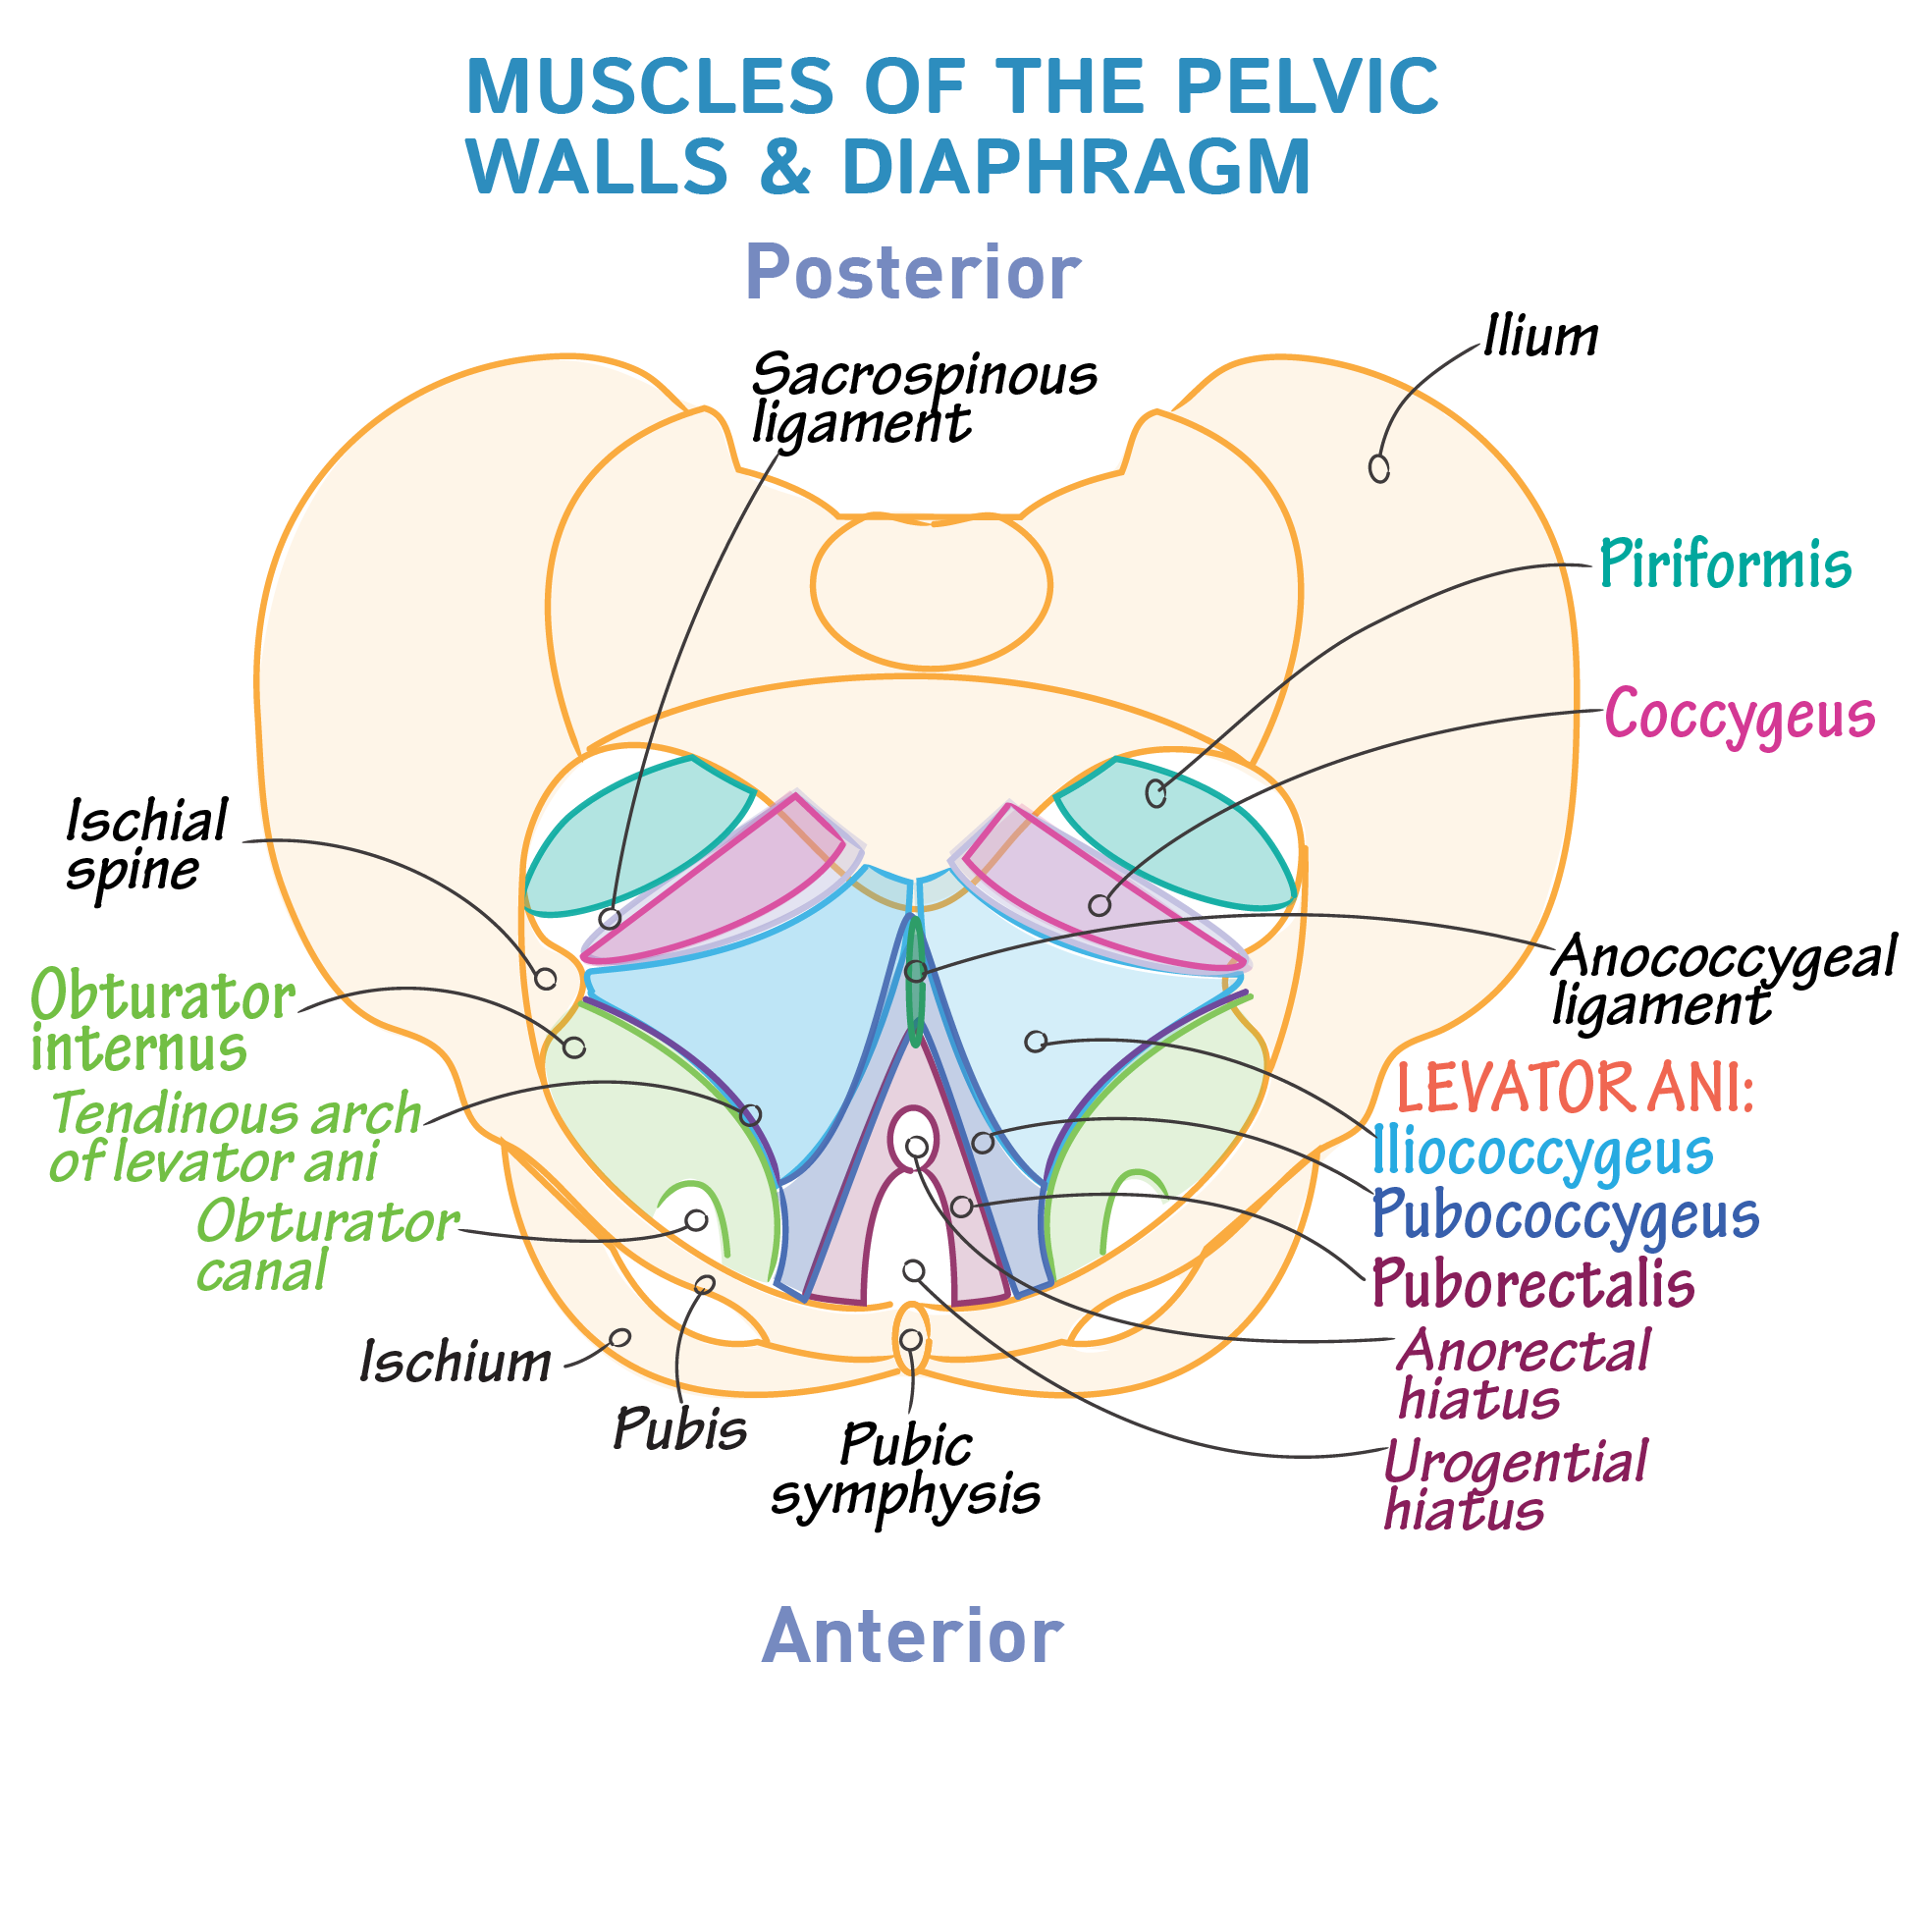 Gross Anatomy Glossary: Pelvic Walls & Diaphragm | Draw It to Know It